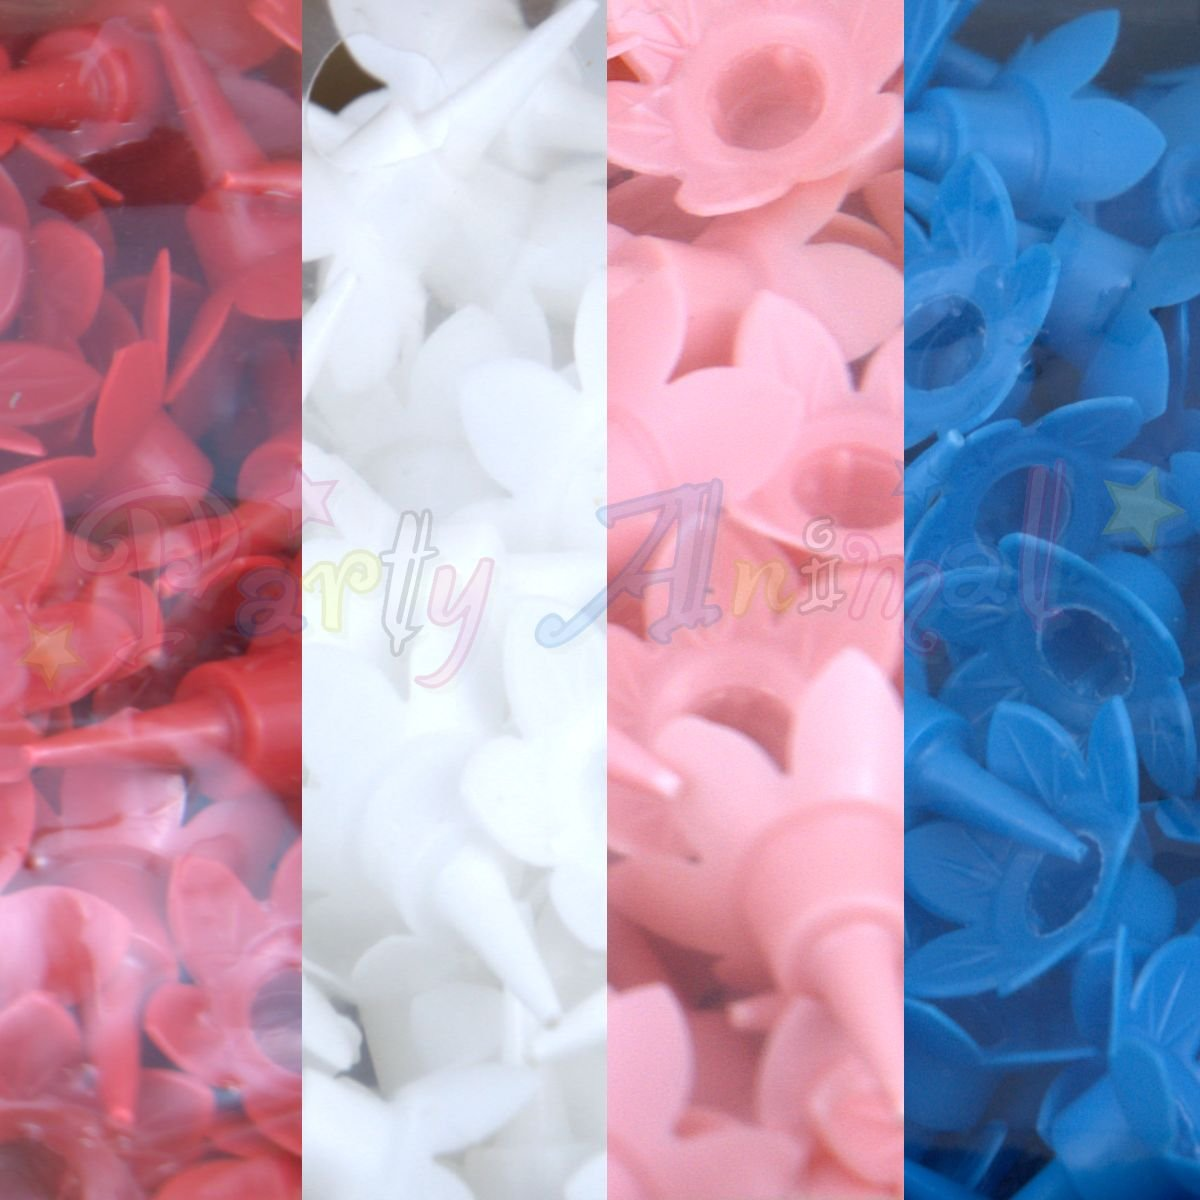 Bulk Pack of Plain Birthday Candles or Holders - Packs of 500 - Cake decoration accessories (Mixed Candle Holders)